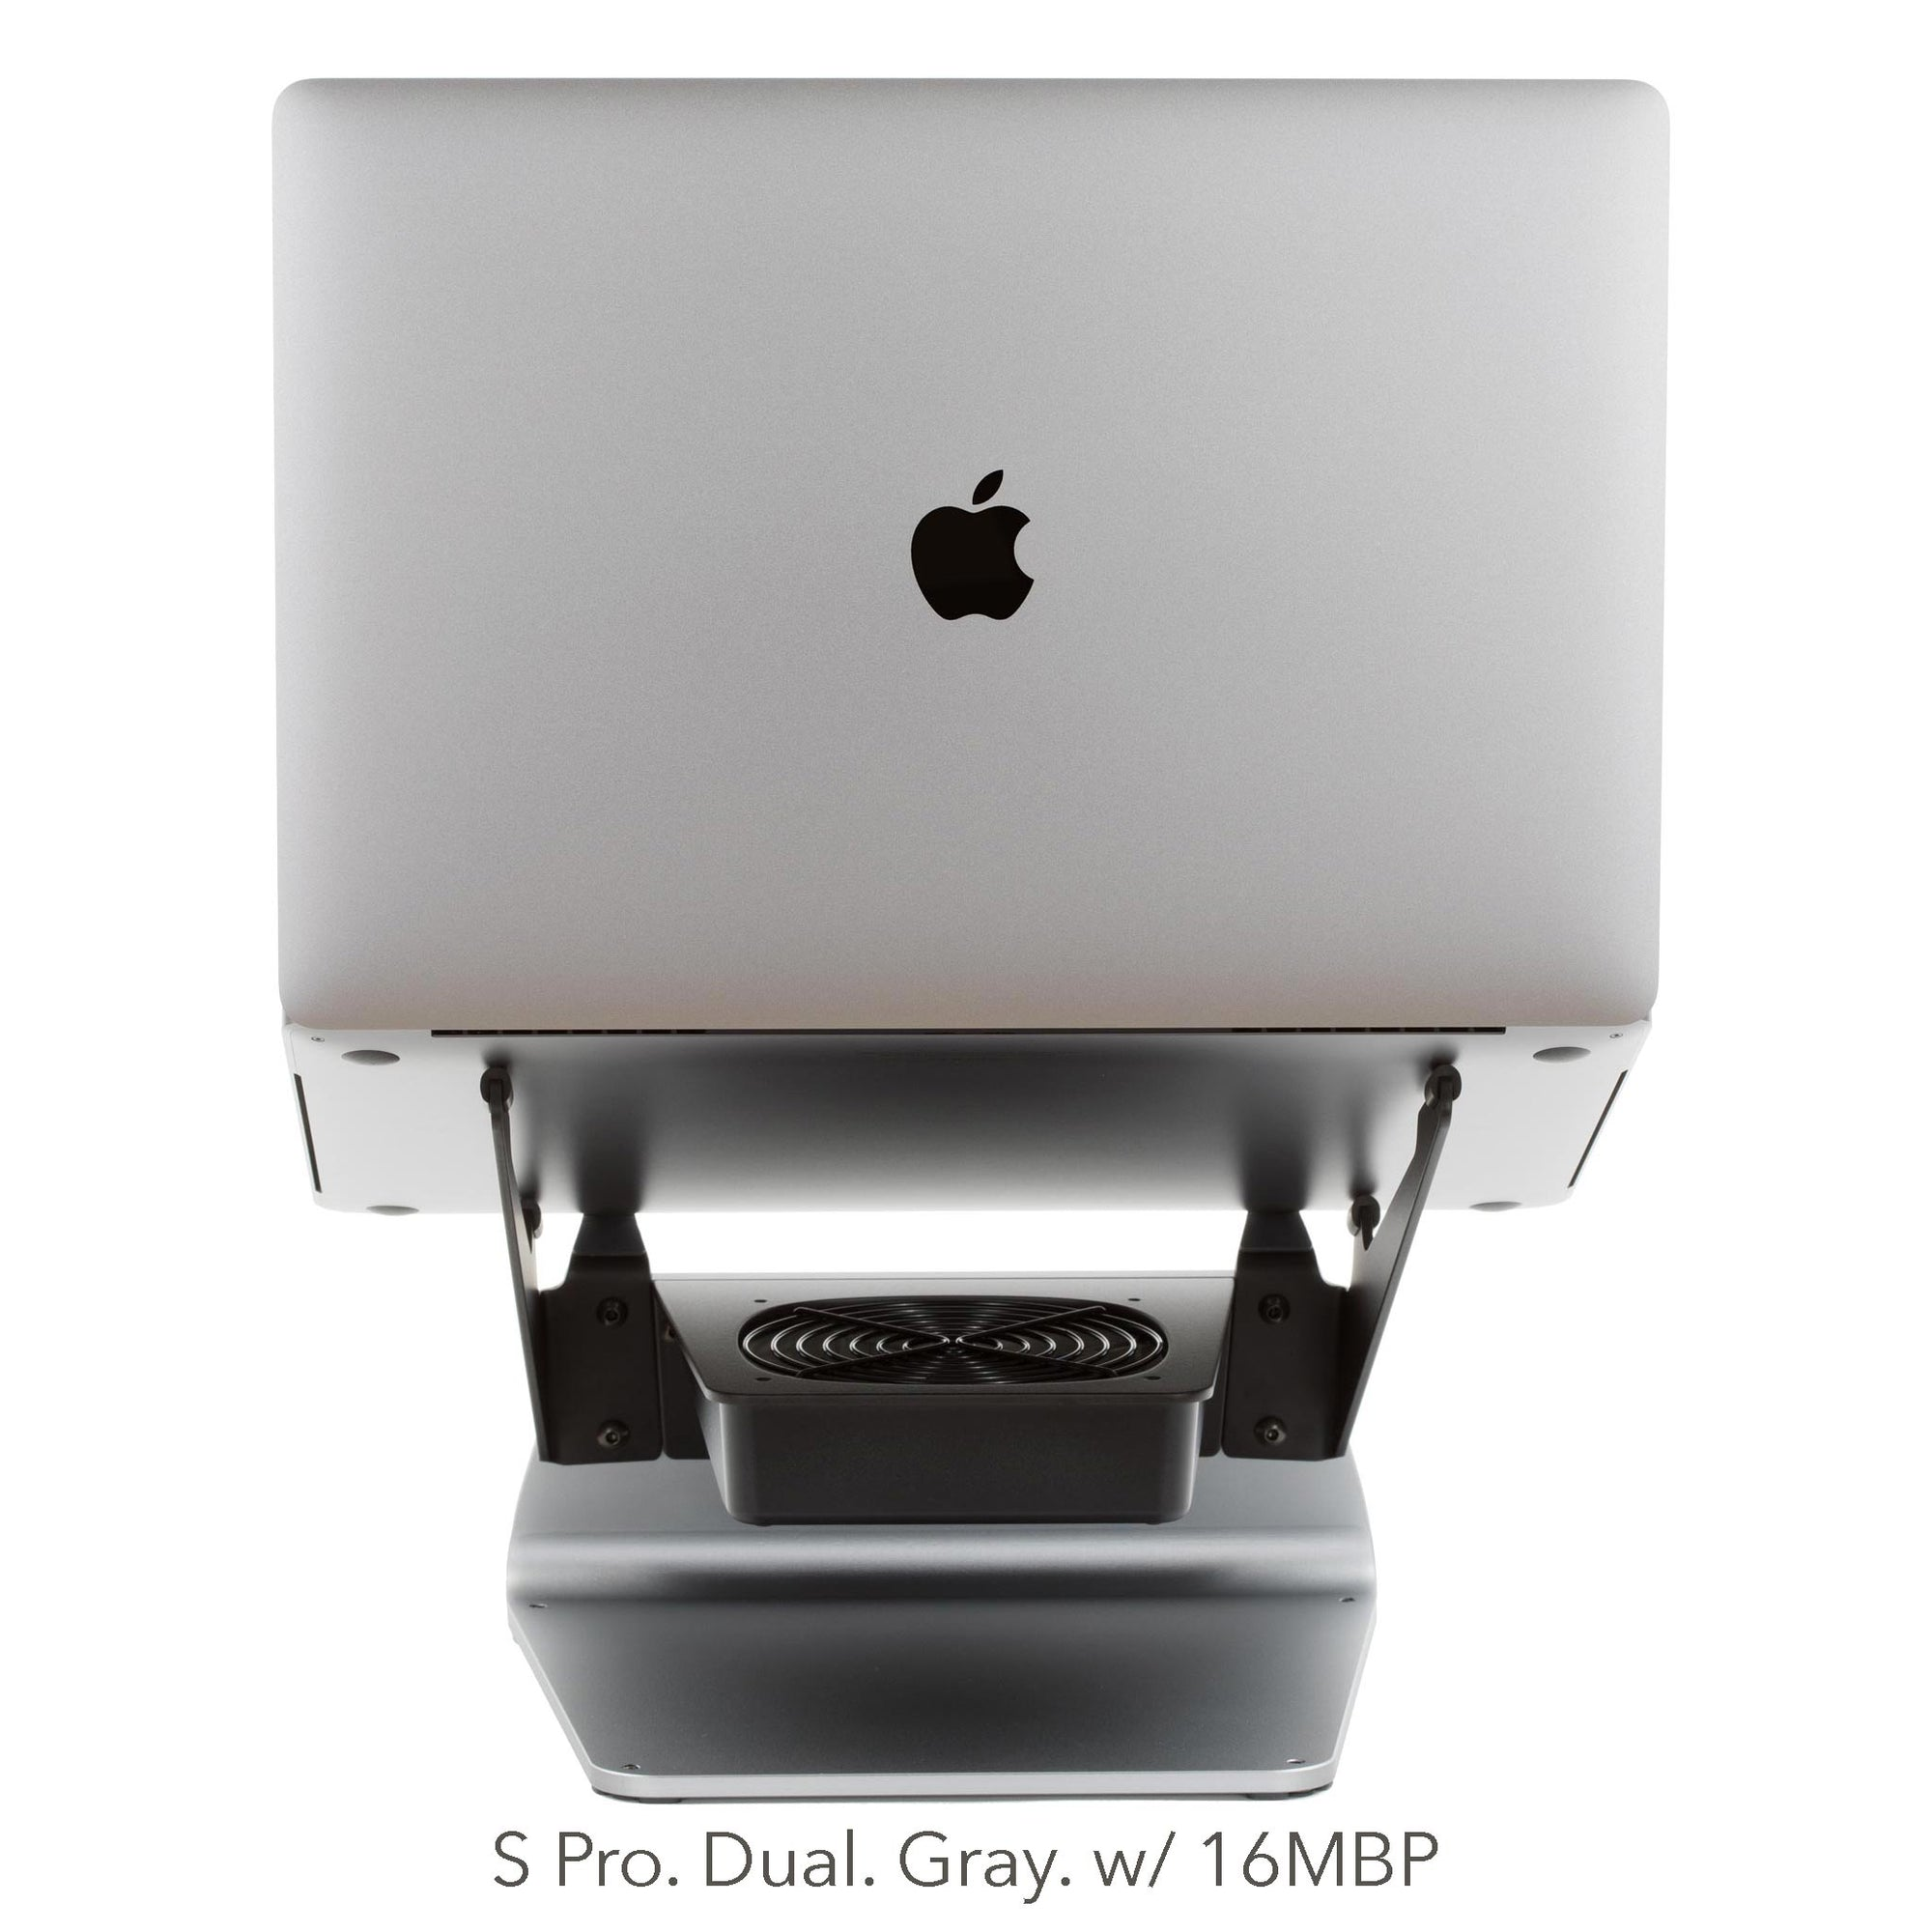 SVALT Cooling Stand Pro (S Pro model) for peak performance with 16-inch MacBook Pro